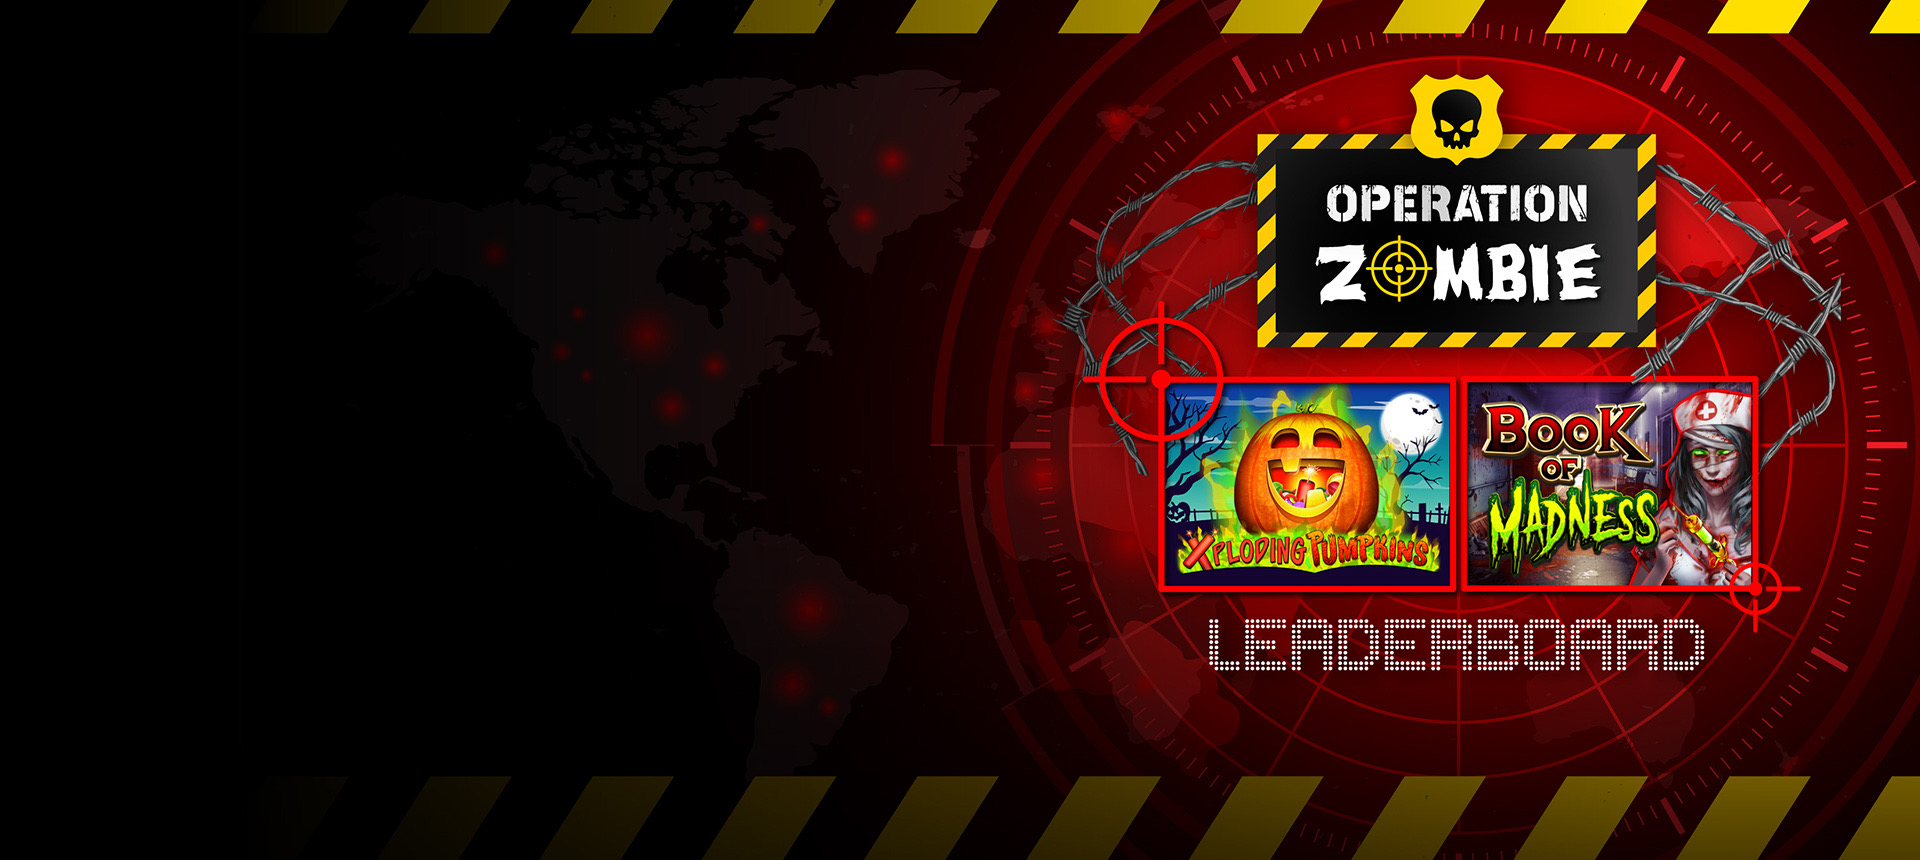 The Zombie apocalypse is here! Save Halloween by luring the zombie horde to the fields of Xploding Pumpkins